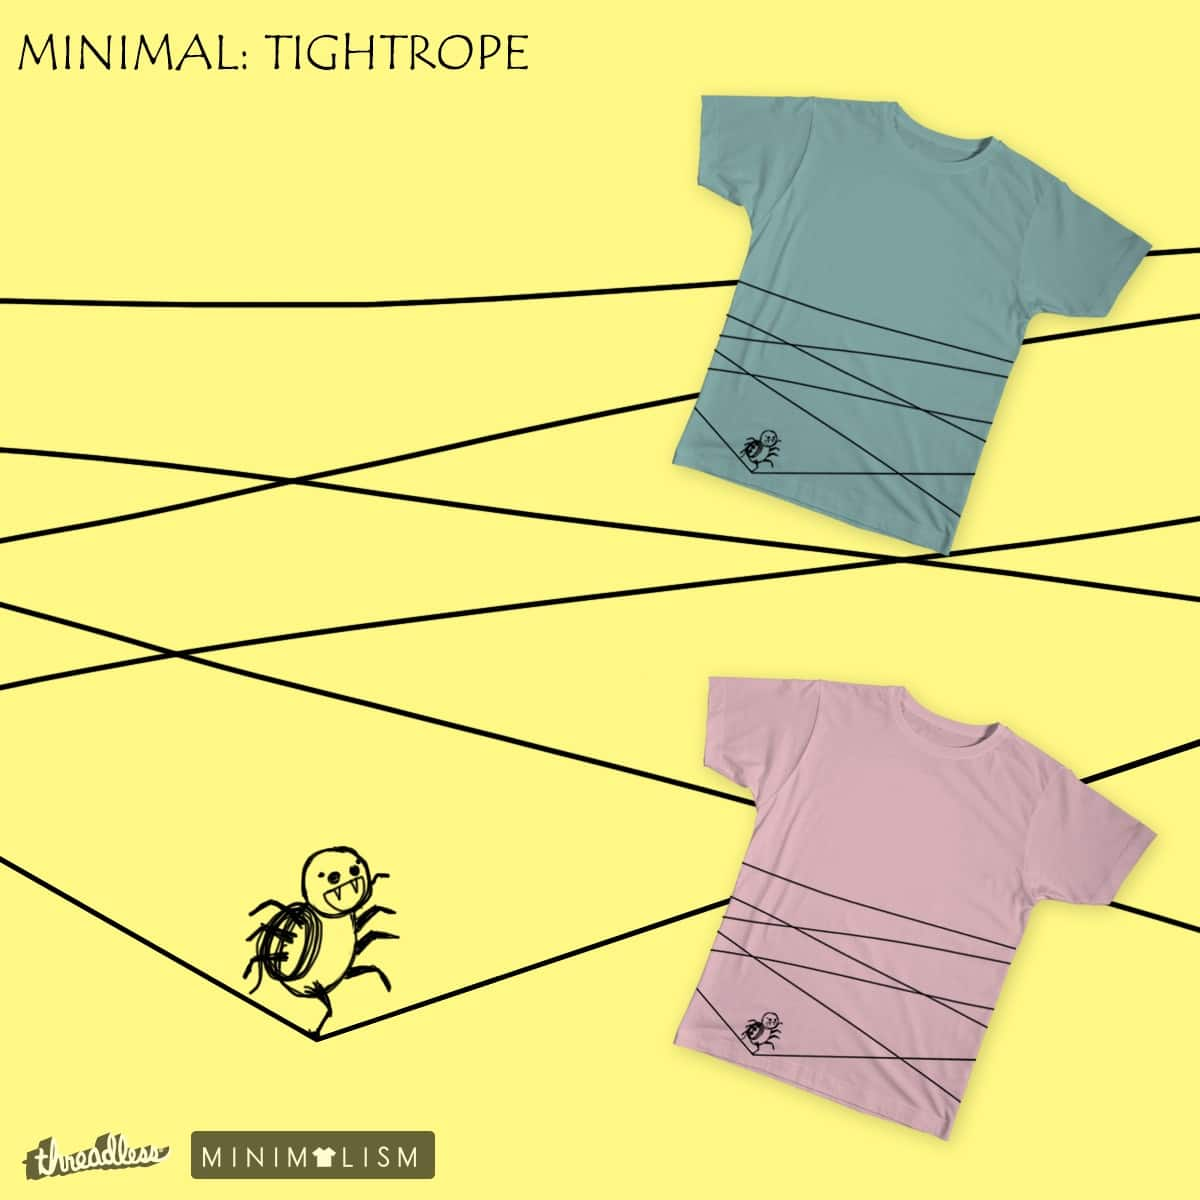 Tightrope by bt92130 on Threadless